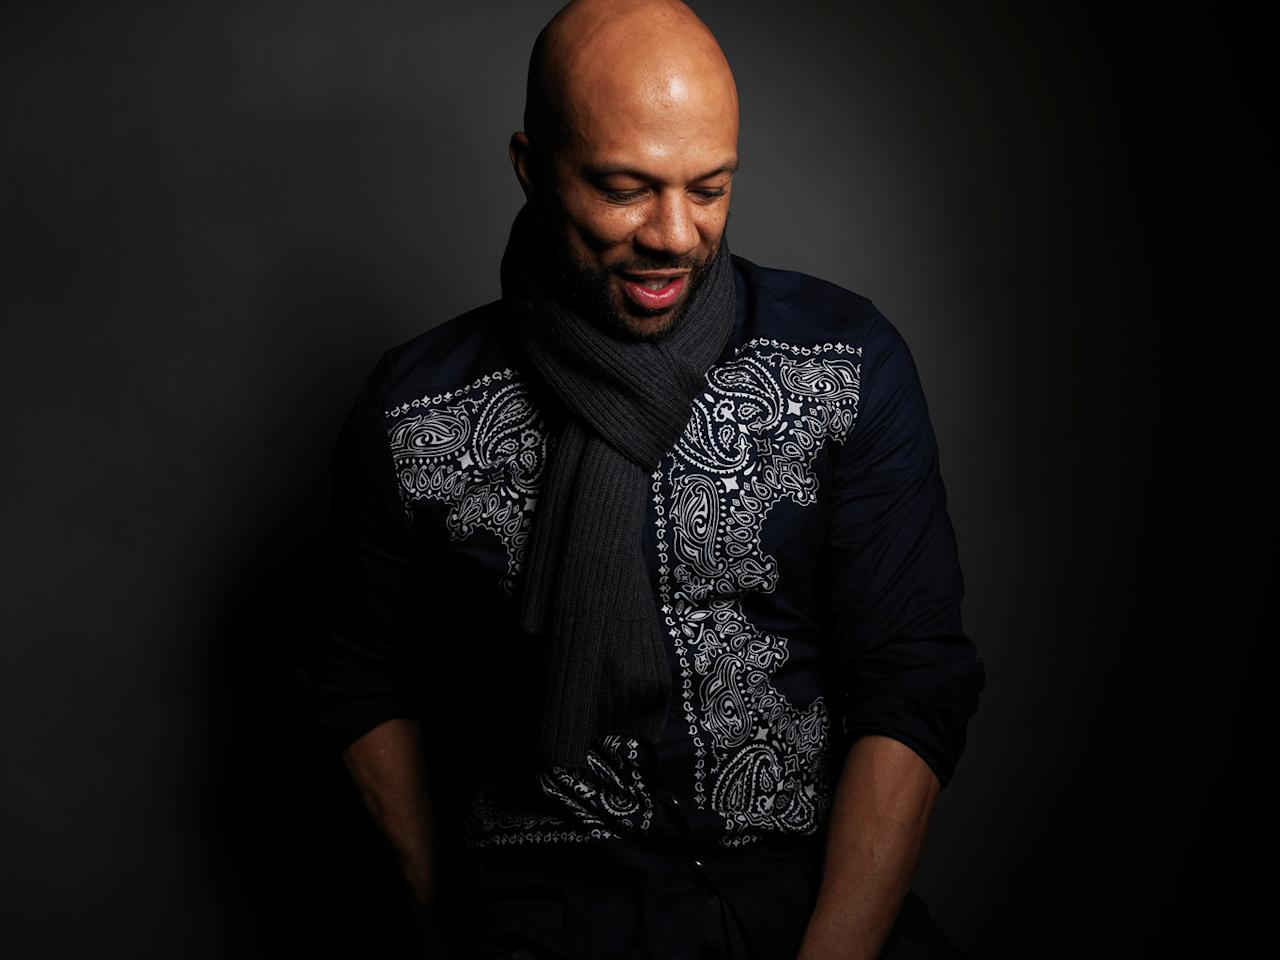 """Common from the film """"LUV,"""" poses for a portrait during the 2012  Sundance Film Festival on Monday, Jan. 23, 2012, in Park City, Utah."""